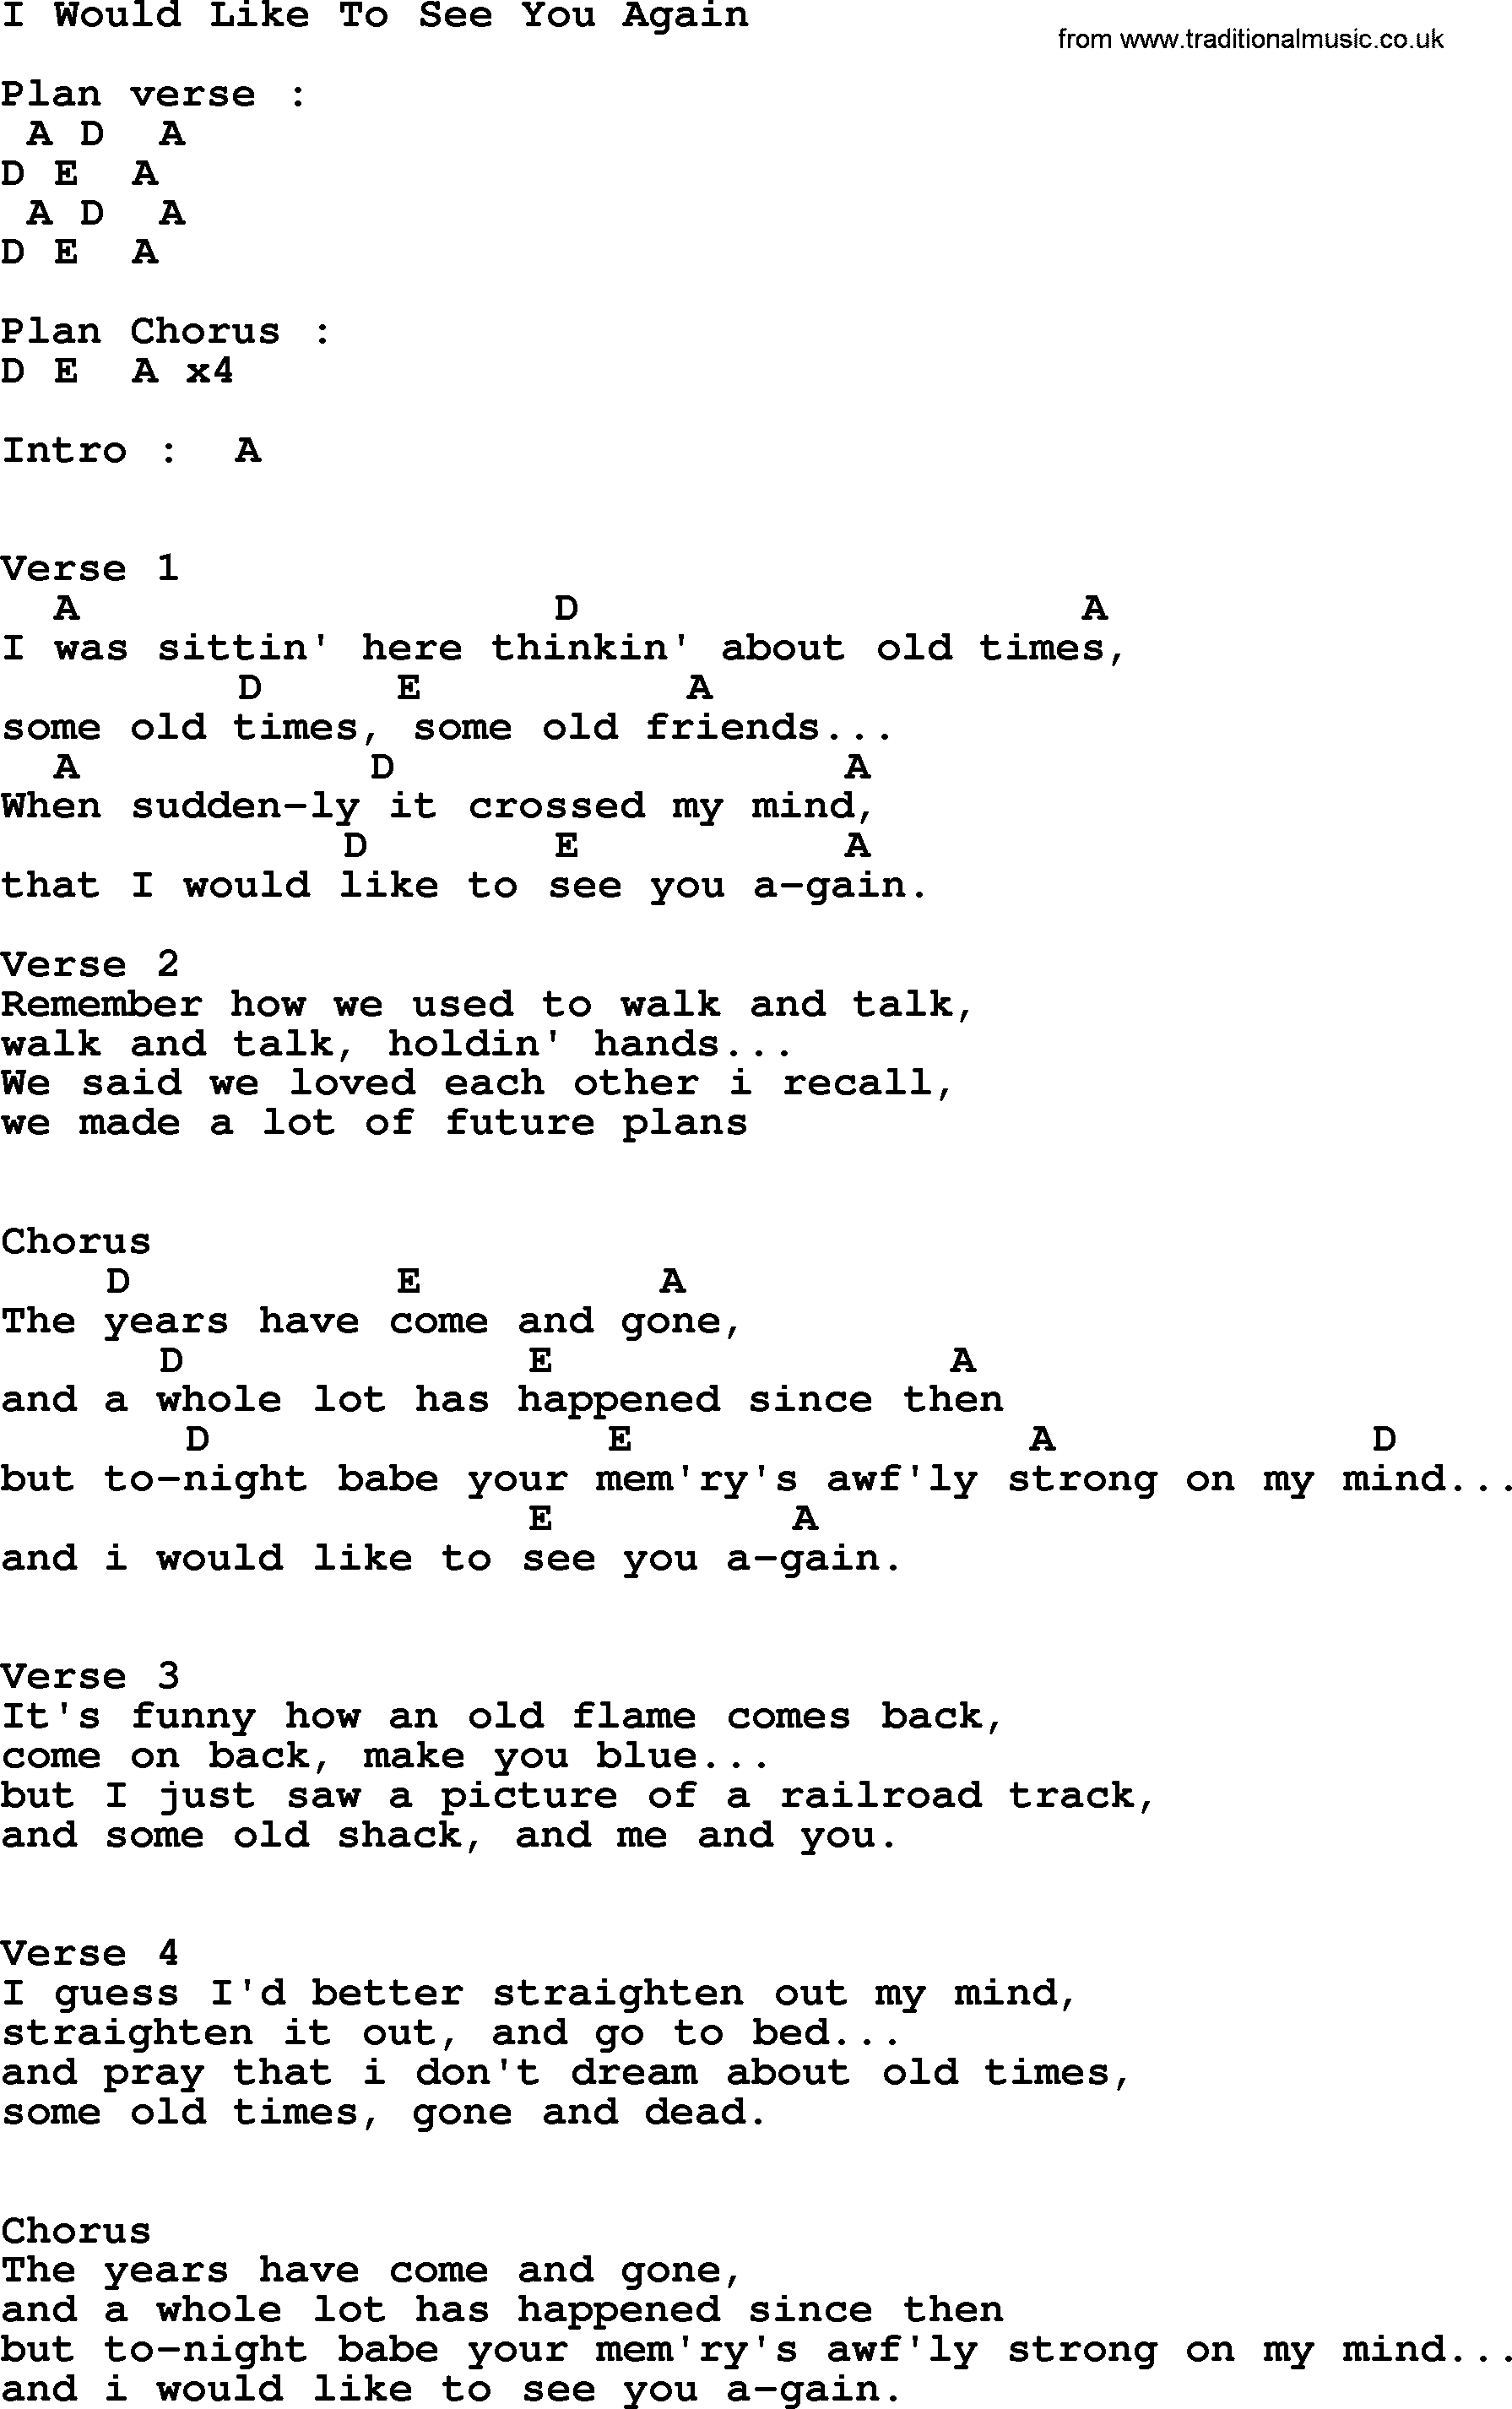 Johnny Cash song: I Would Like To See You Again, lyrics and chords